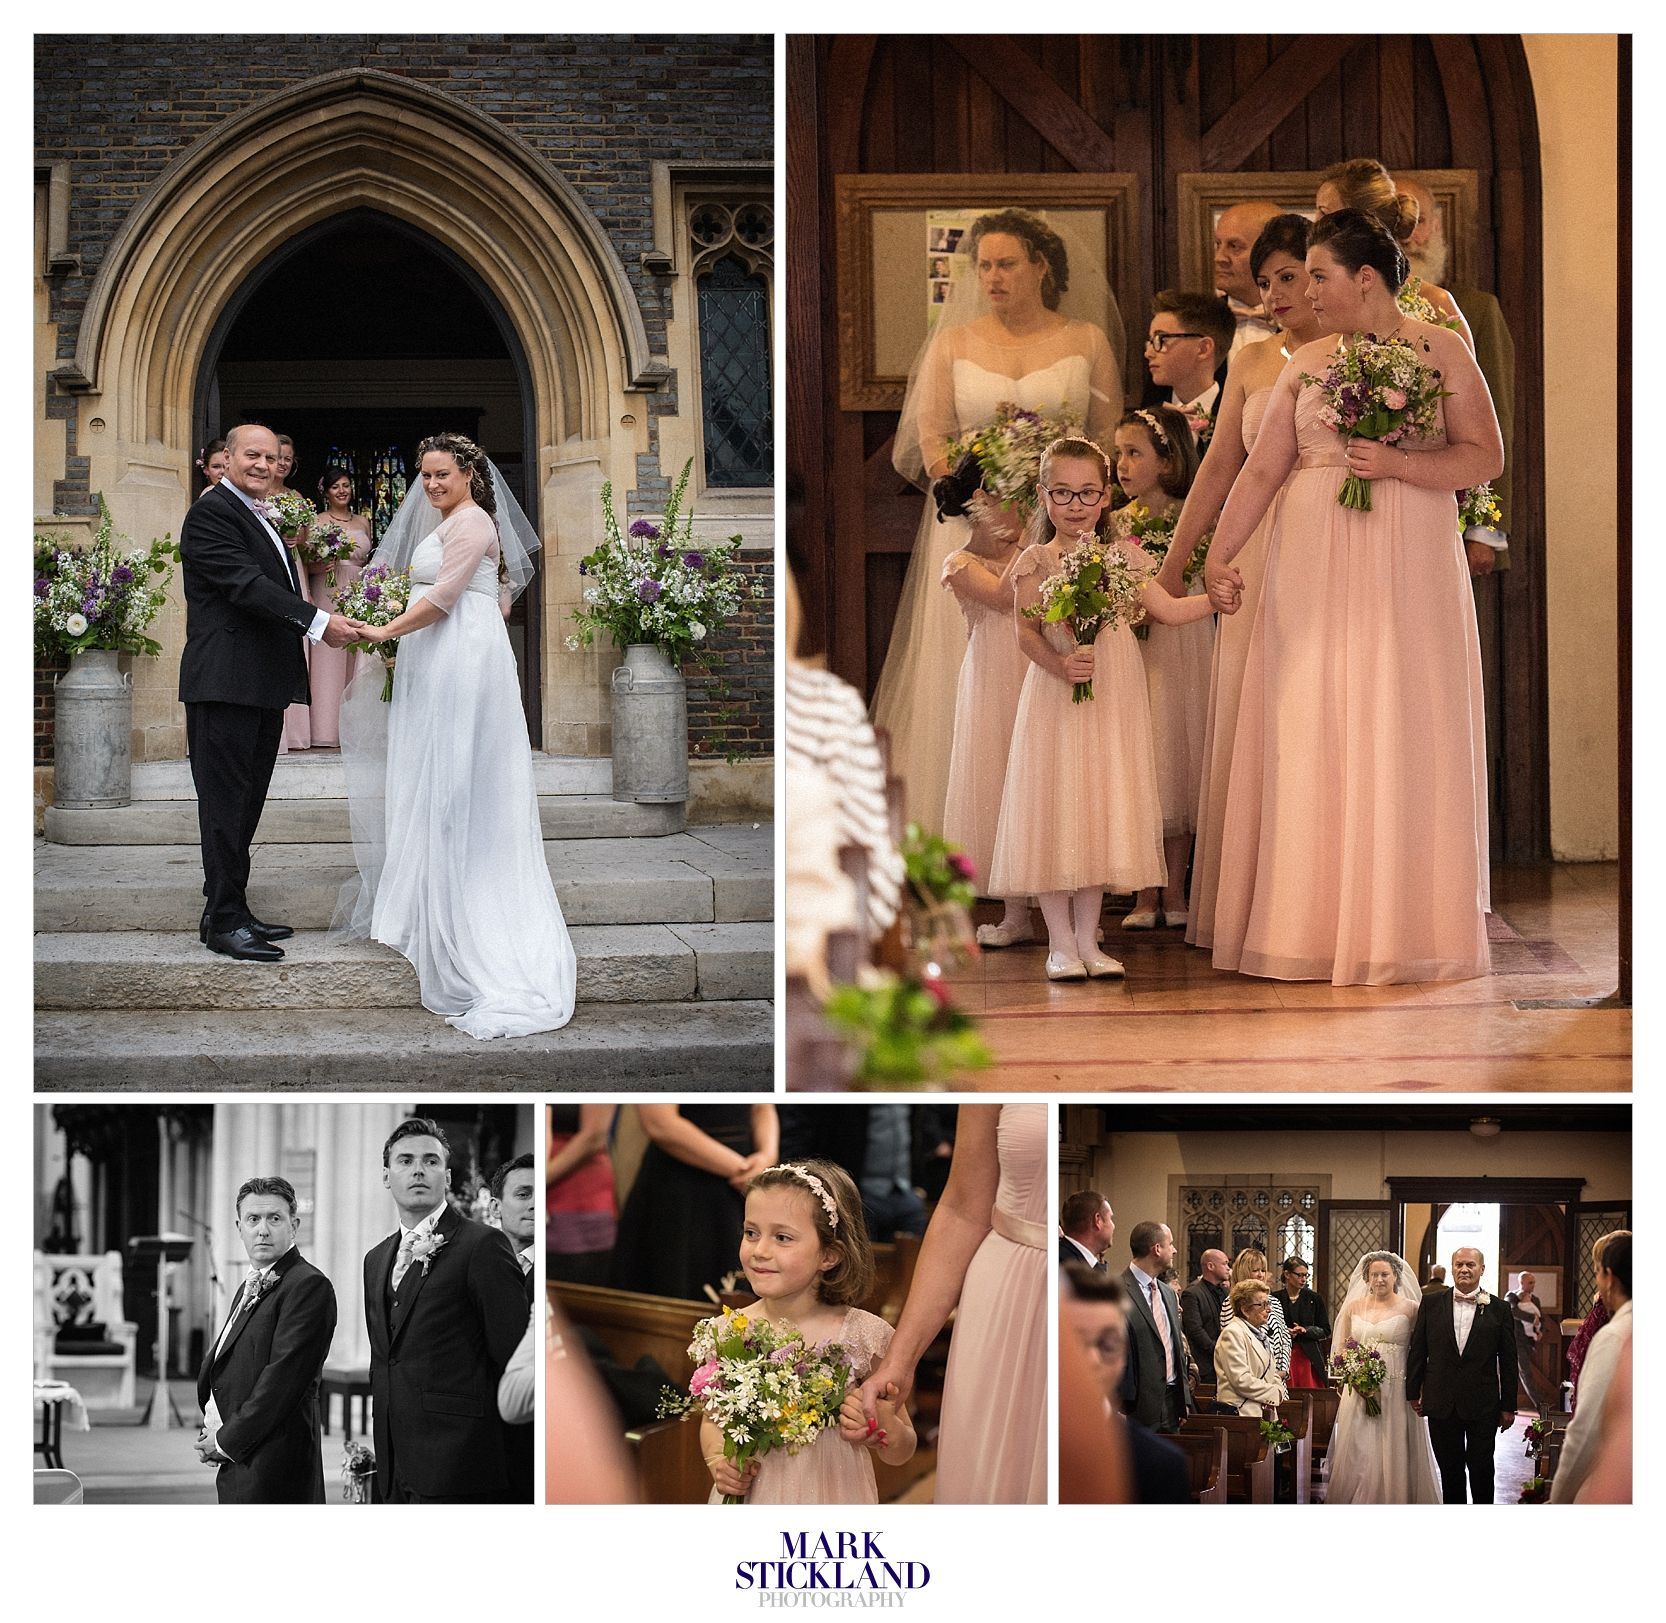 08.micklesfield hall_sarratt_wedding_mark stickland photography